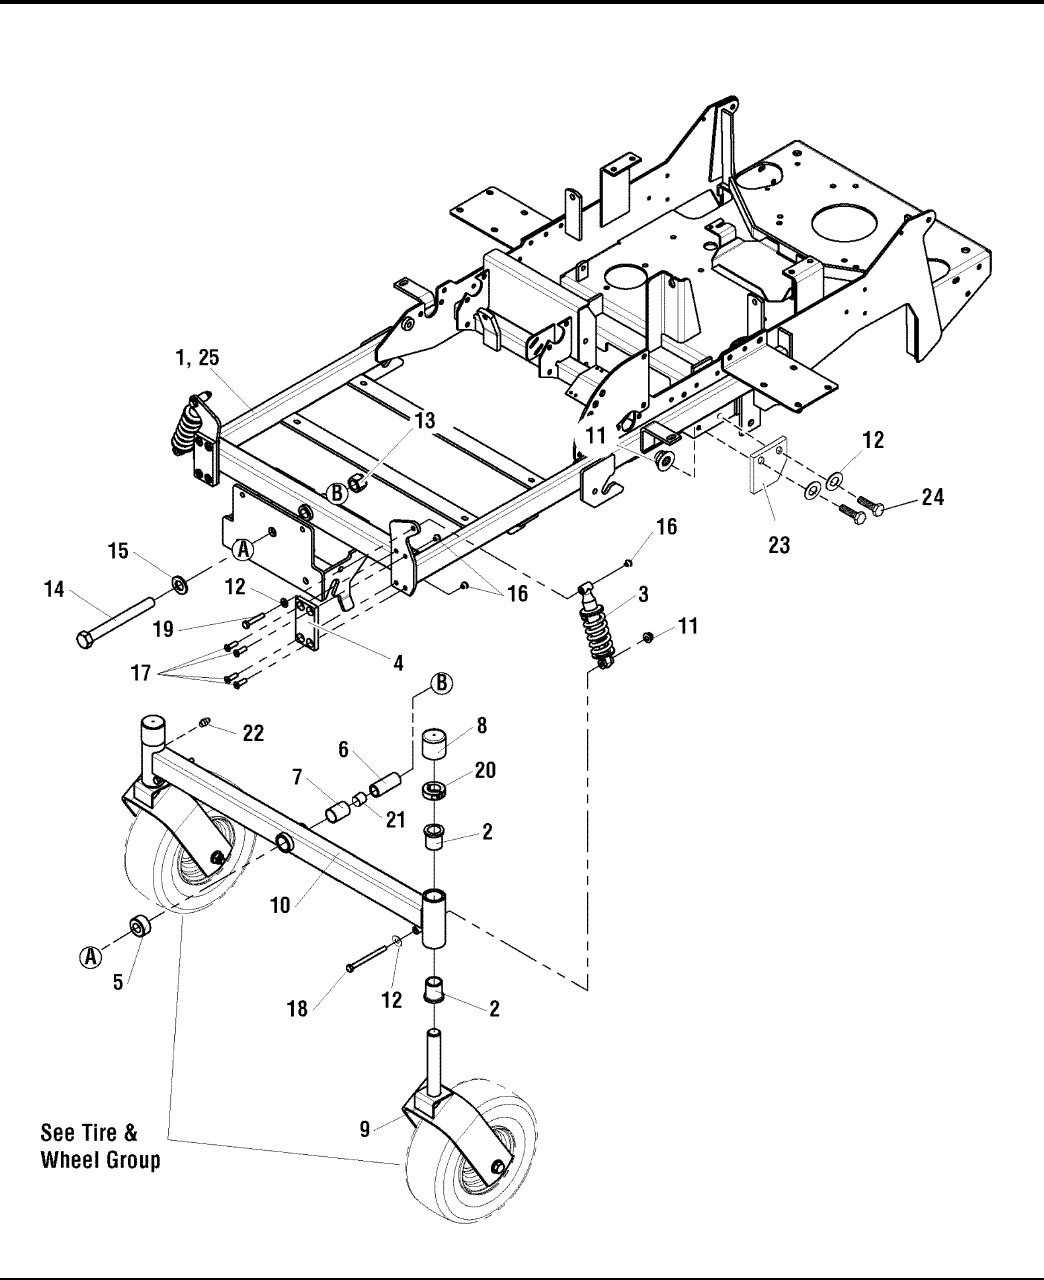 Page 4 of Simplicity Lawn Mower 2690451 User Guide